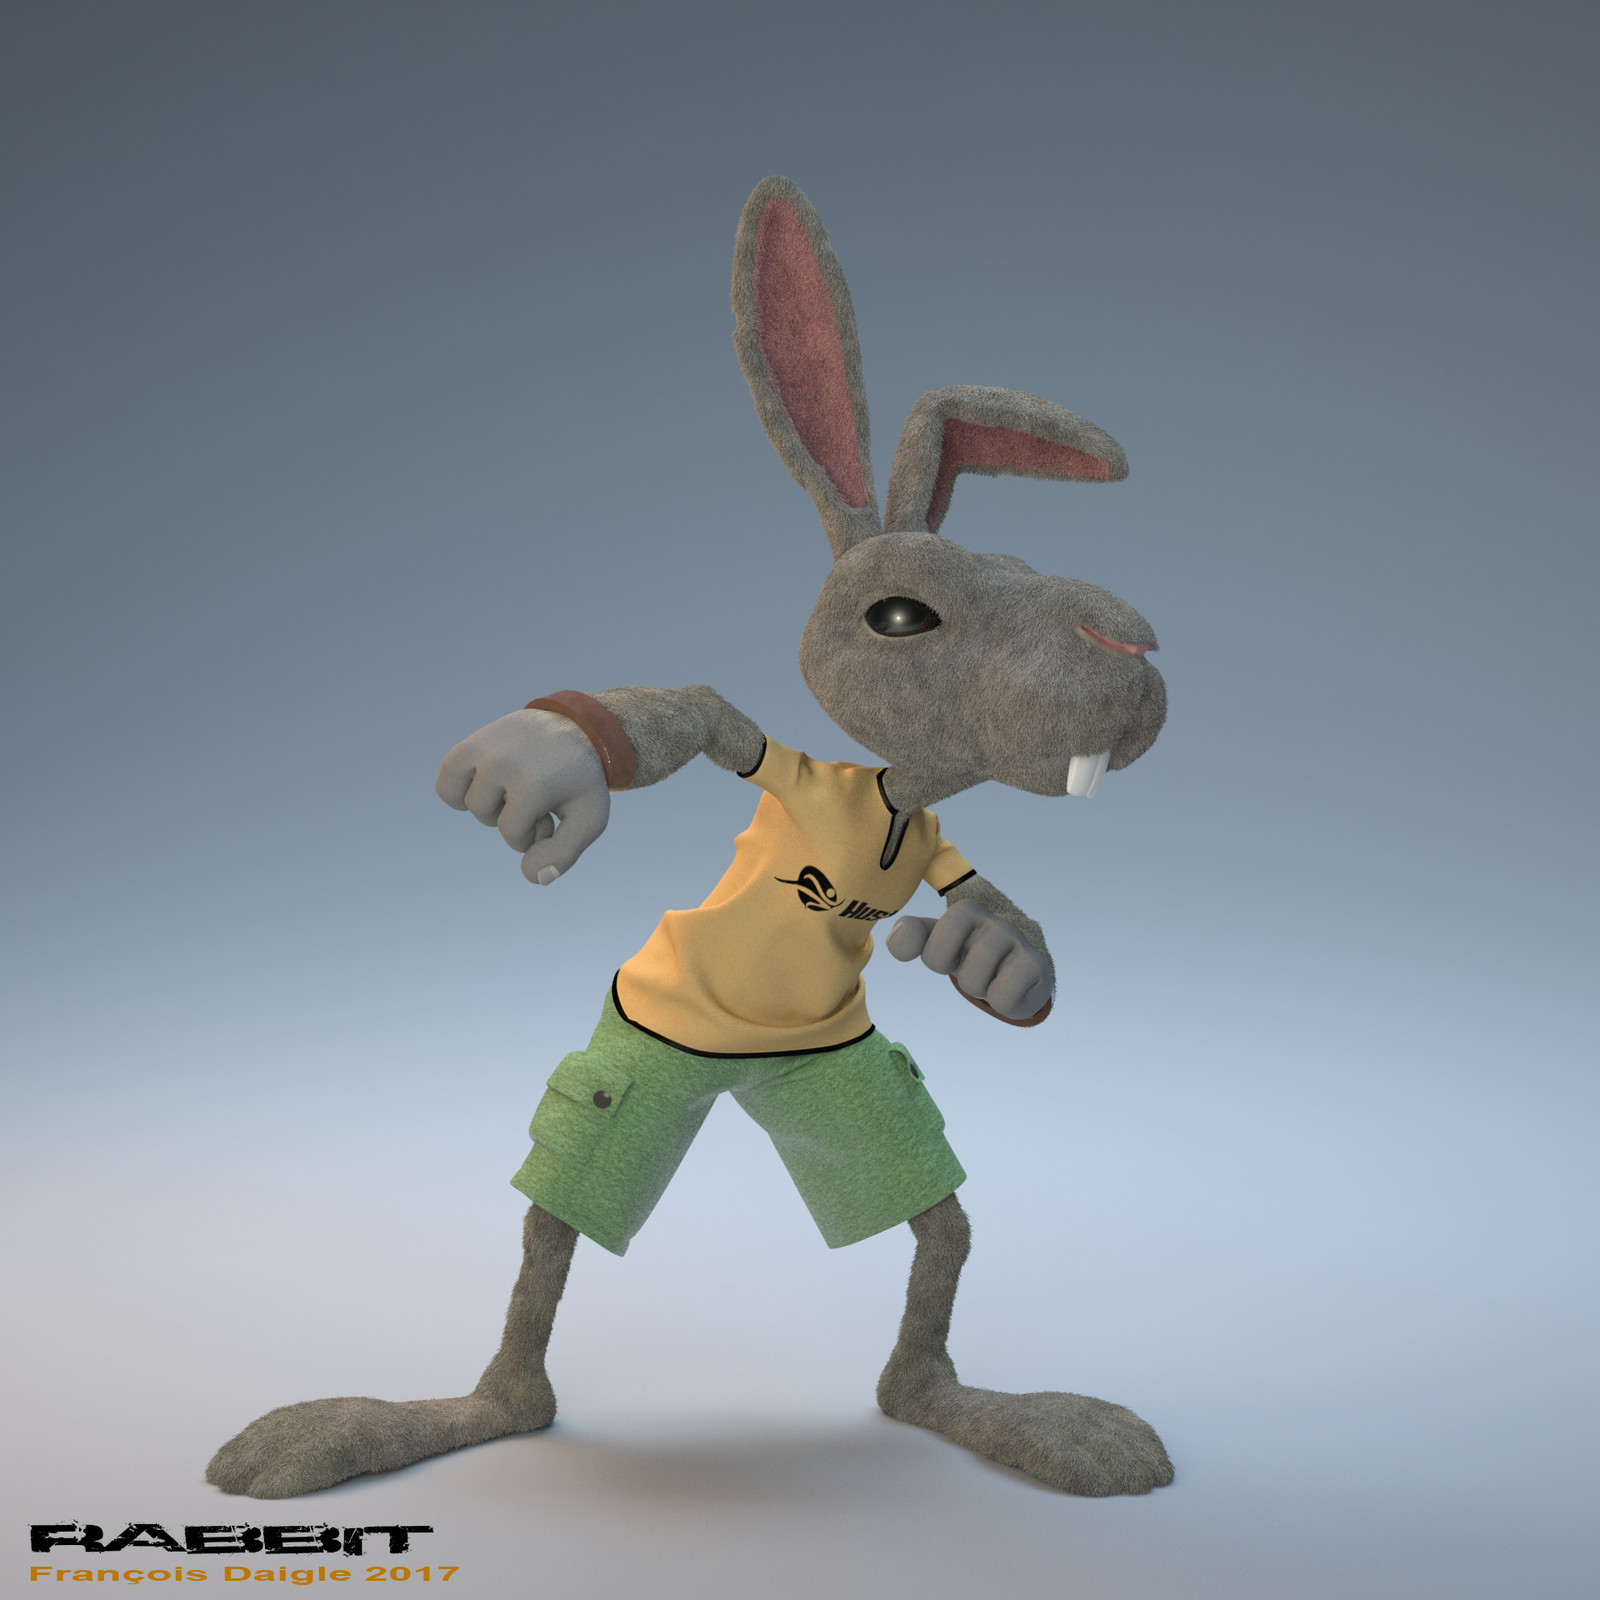 Rabbit updated with fur